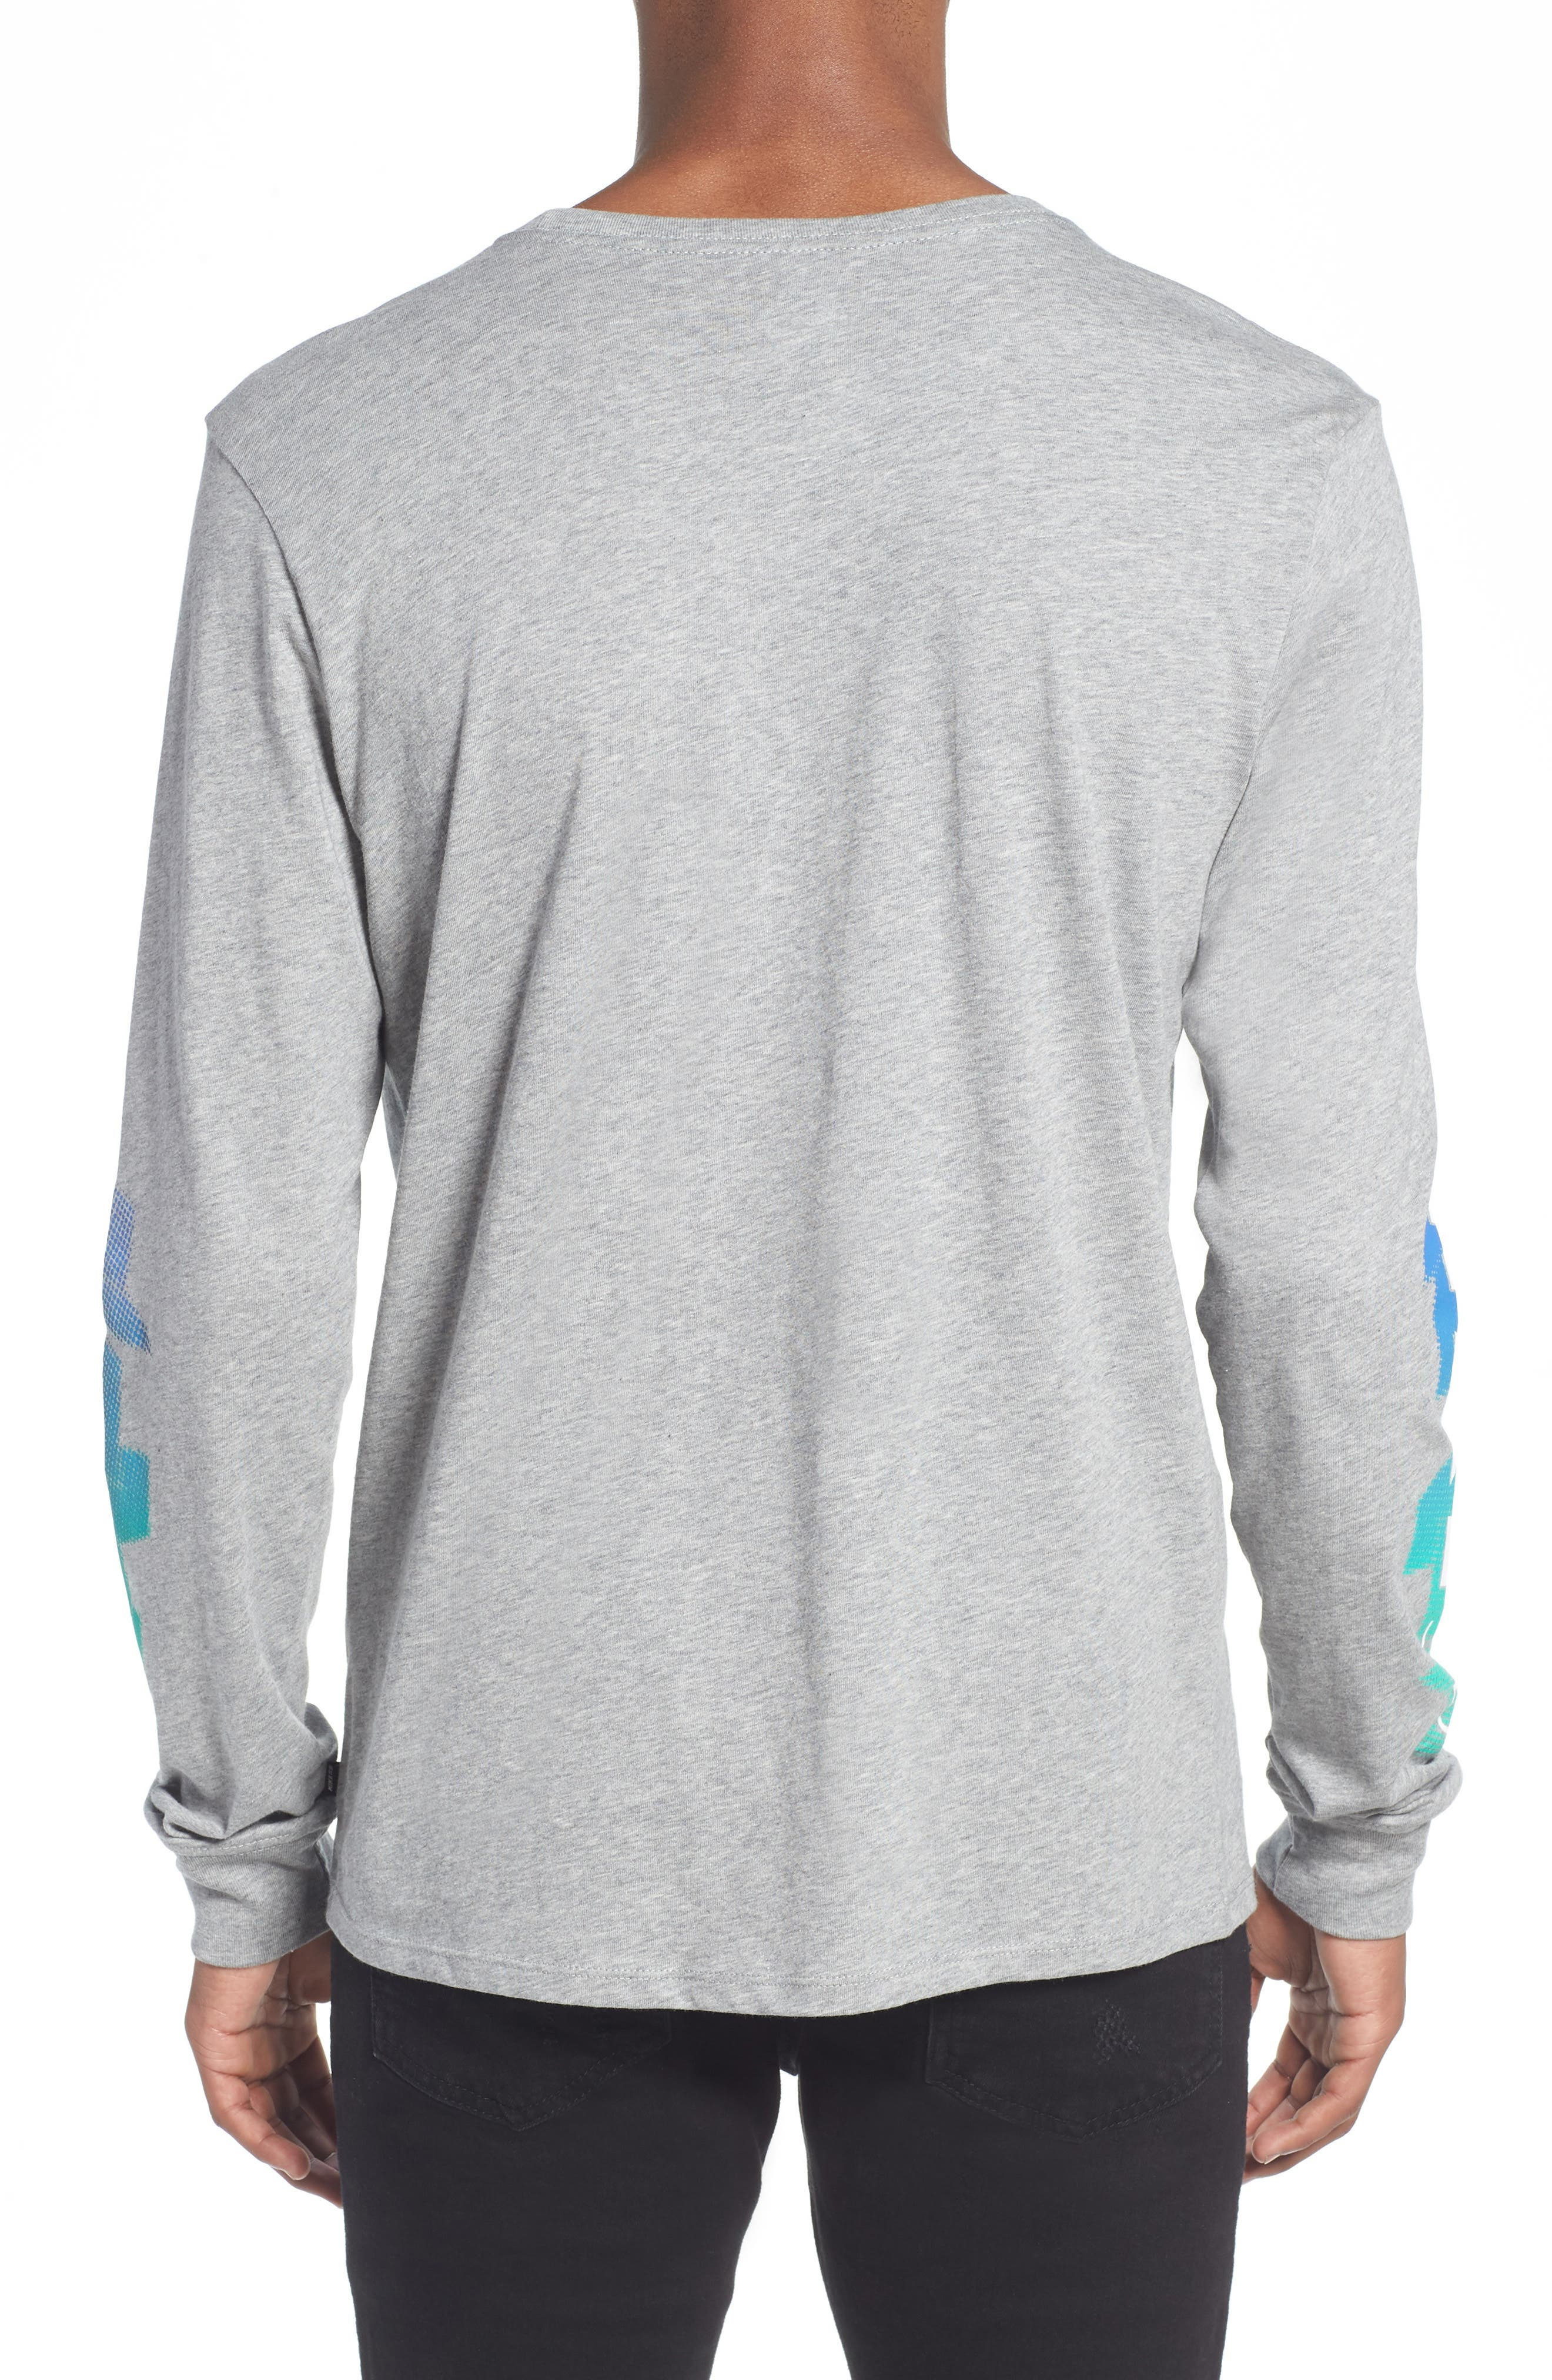 SB Globe Graphic Long Sleeve T-Shirt,                             Alternate thumbnail 2, color,                             Dark Grey Heather